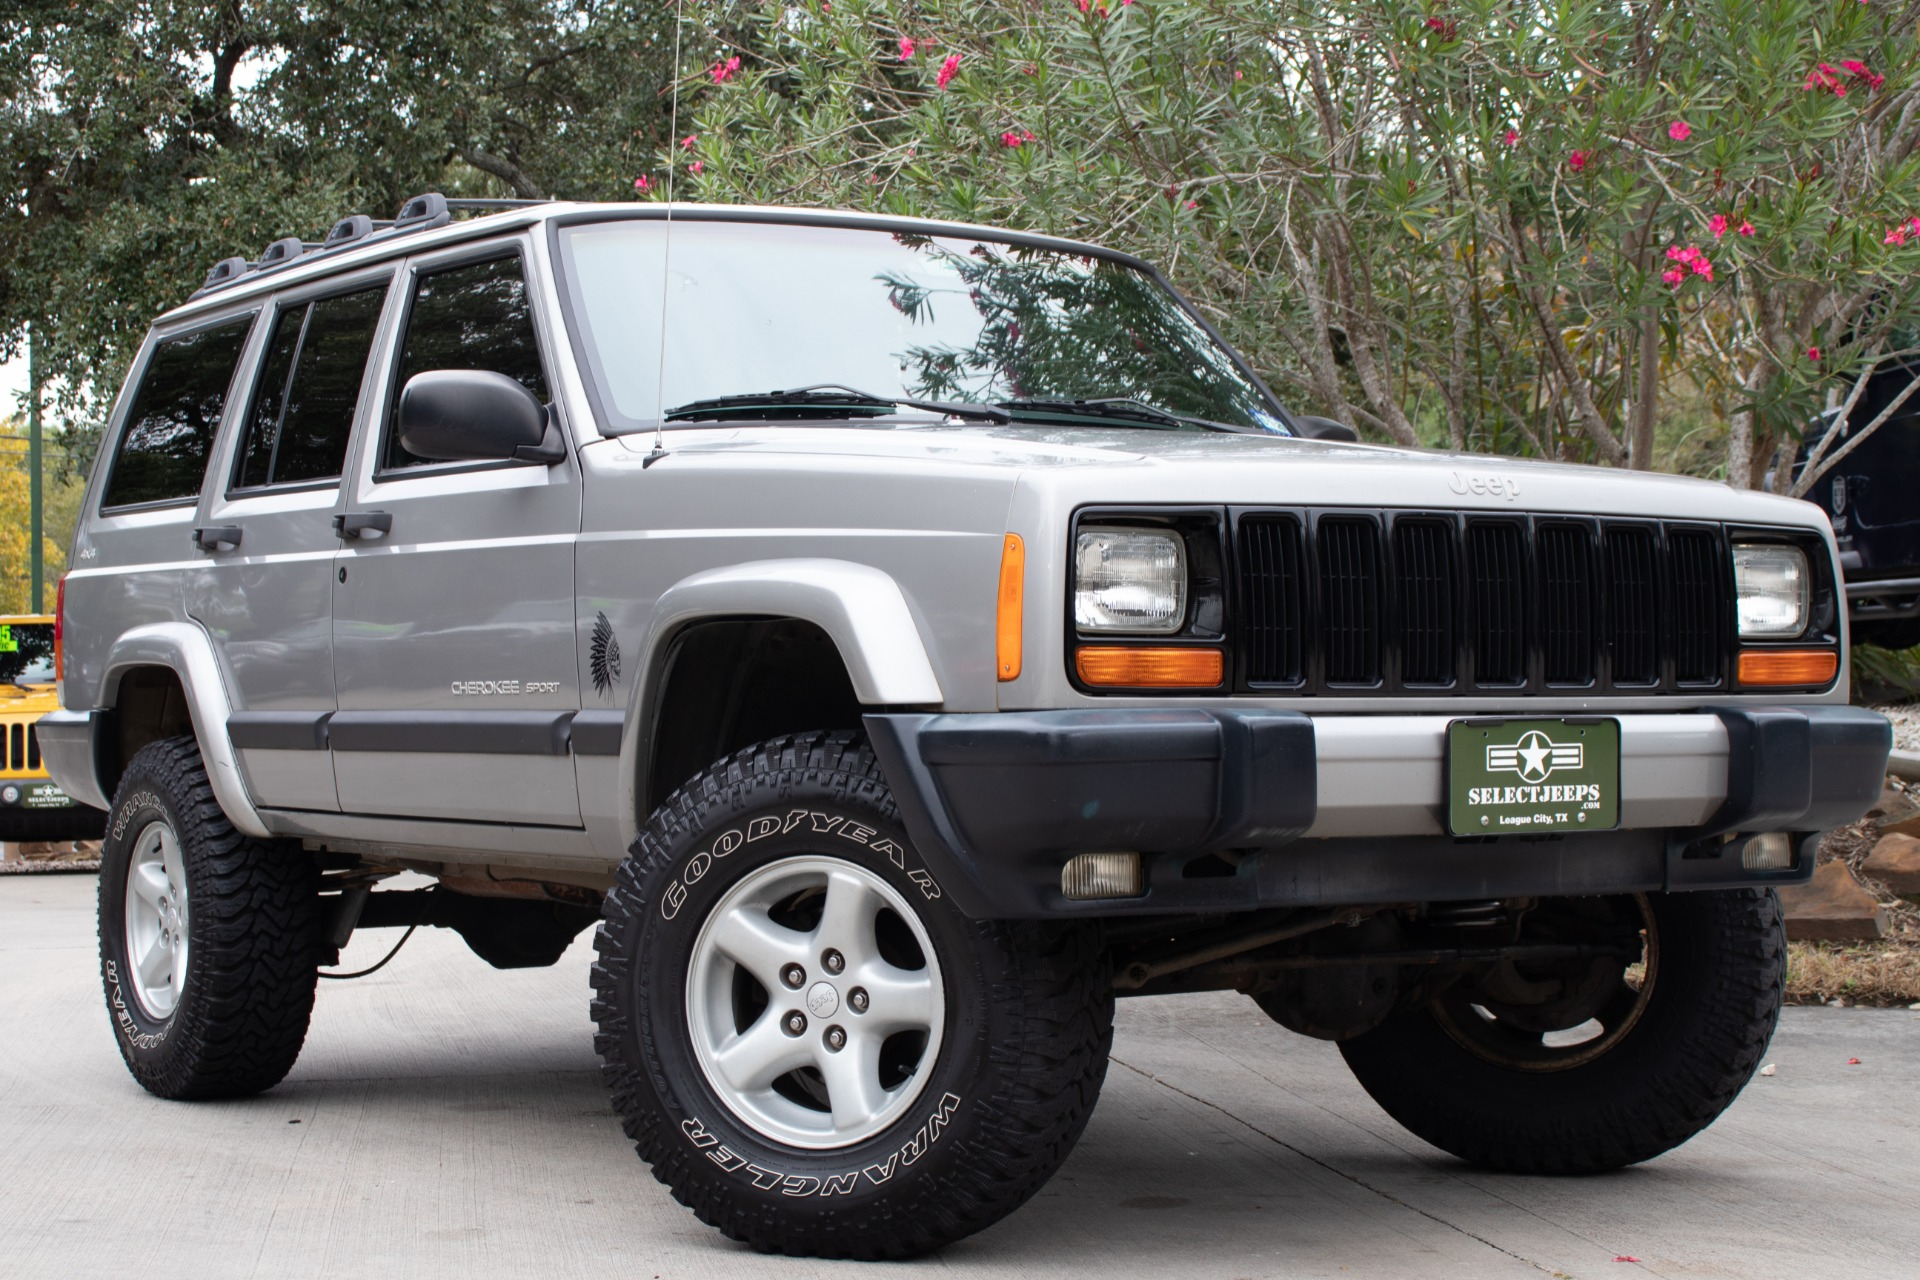 Used 2001 Jeep Cherokee Sport For Sale 9 995 Select Jeeps Inc Stock 528706